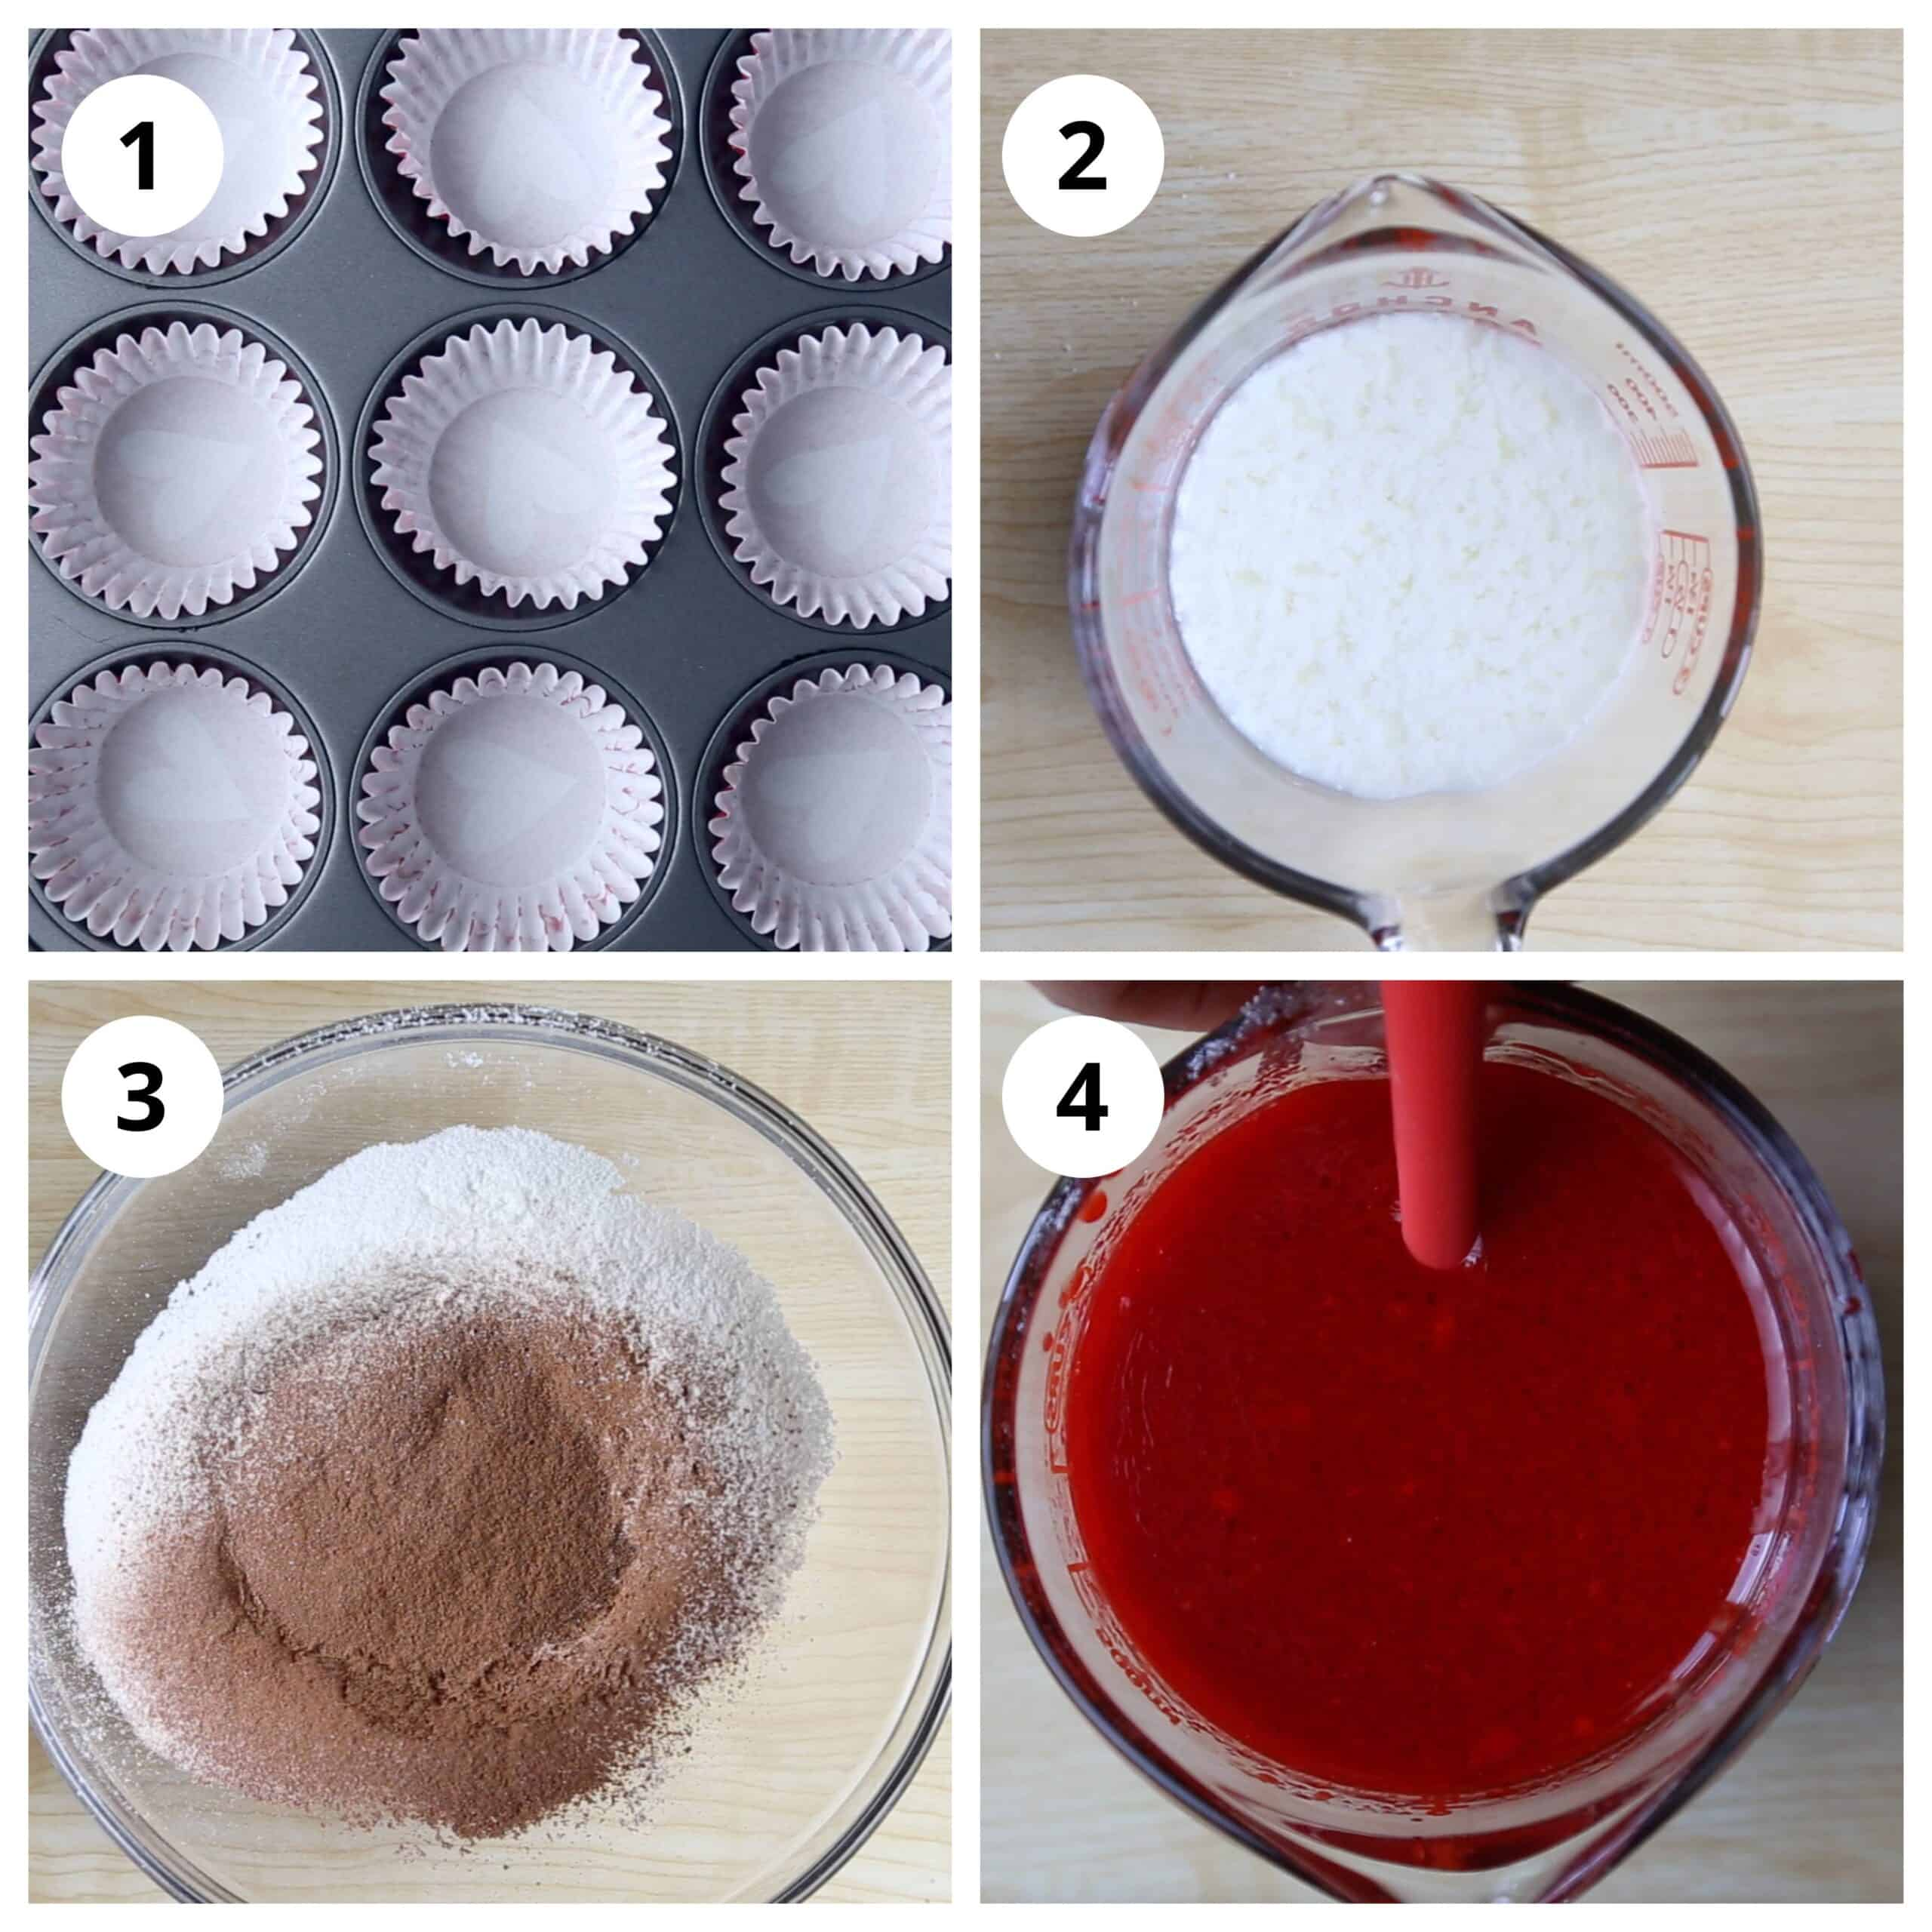 Steps for prepping wet and dry ingredients for red velvet cupcakes